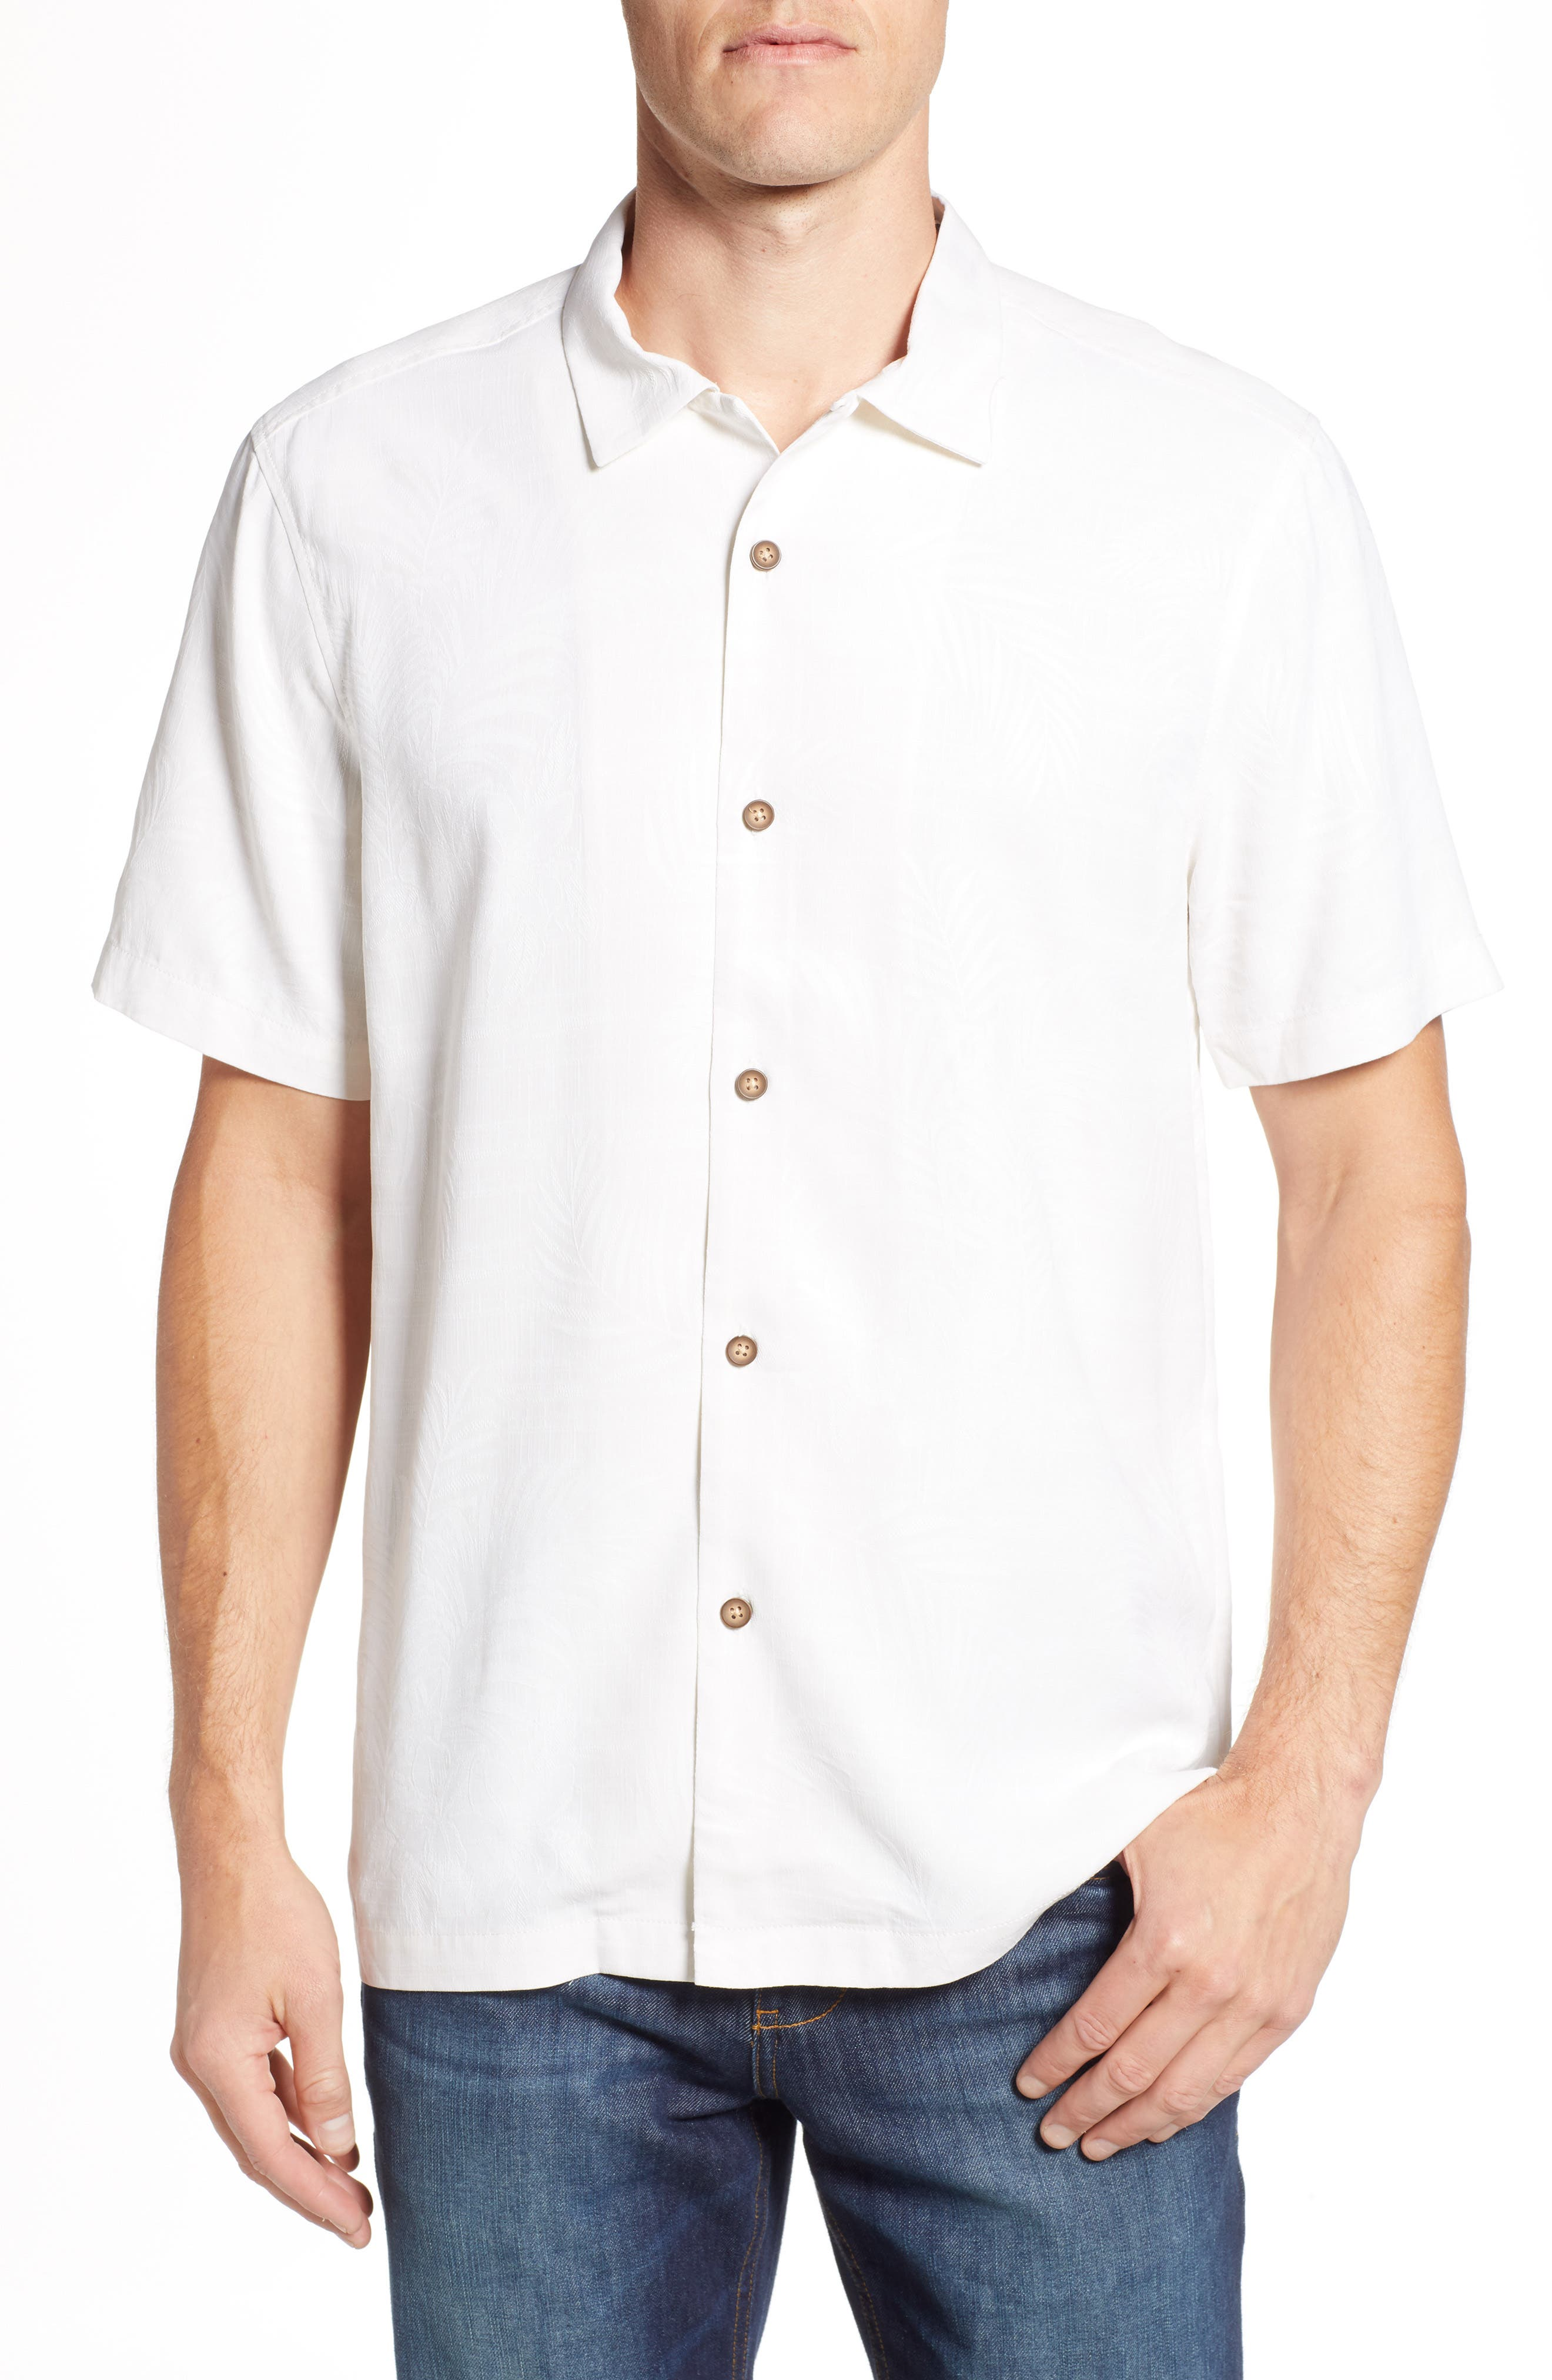 TOMMY BAHAMA,                             Tailgate Club Embroidered Silk Camp Shirt,                             Main thumbnail 1, color,                             100